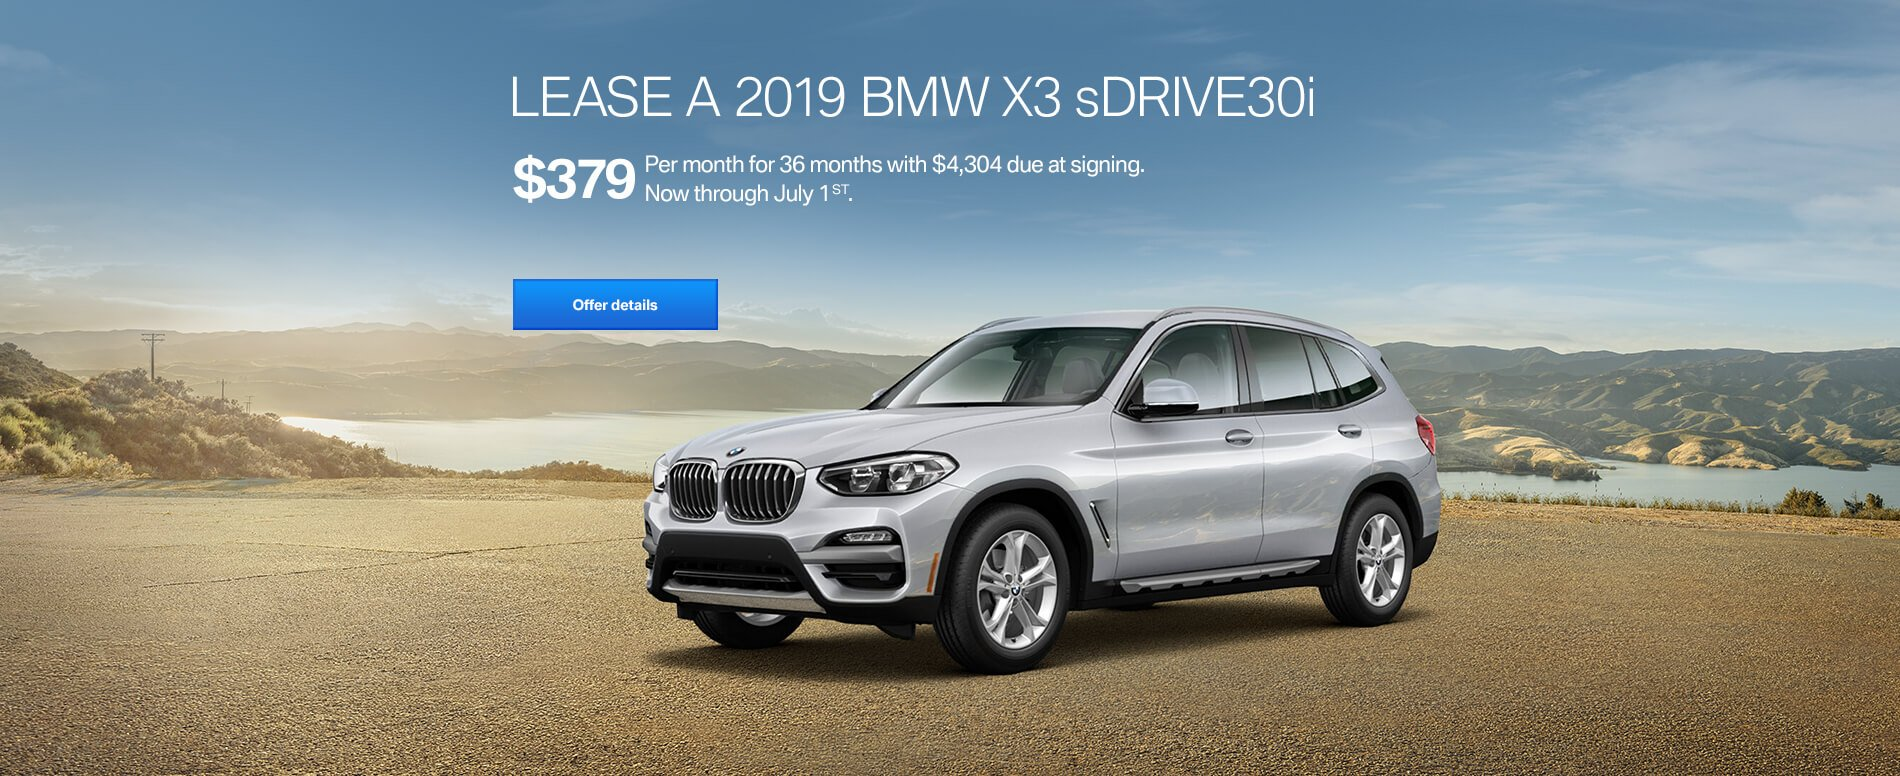 LEASE A 2019 BMW X3 sDRIVE30i FOR $379/MONTH FOR 36 MONTHS WITH